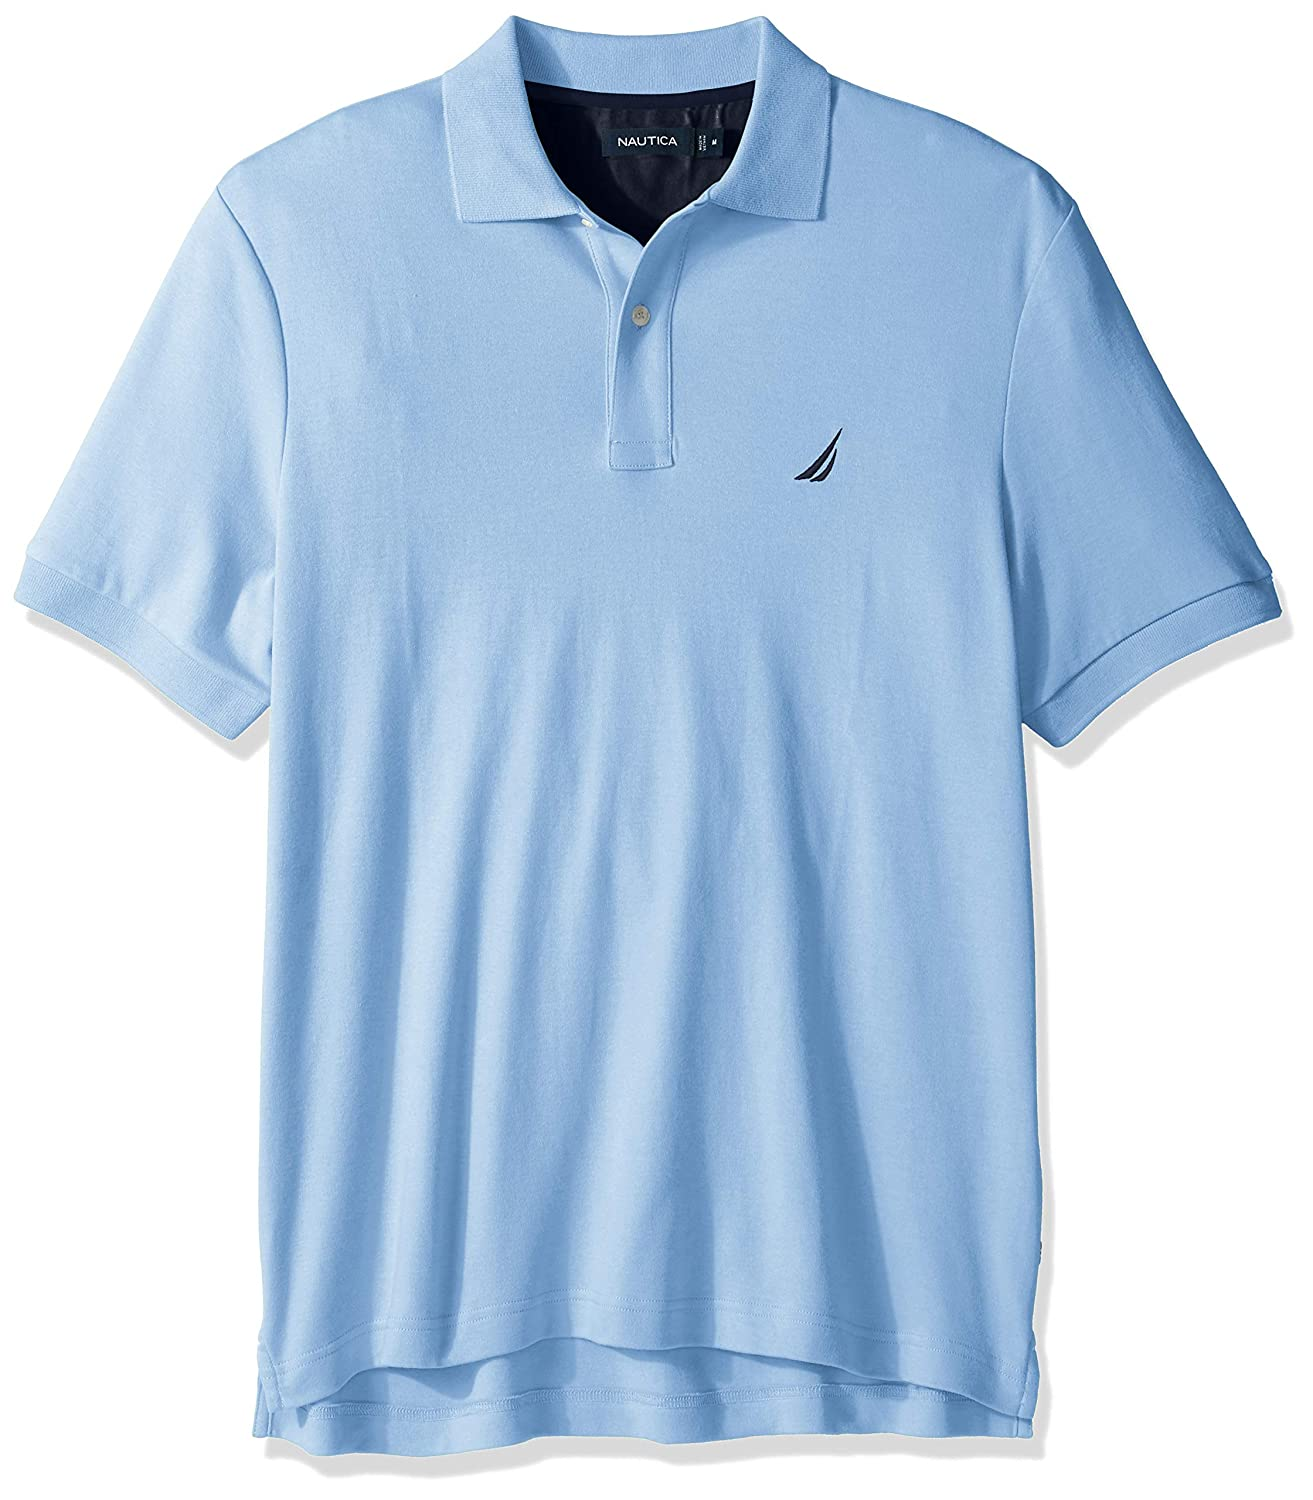 Nautica Mens Classic Fit Short Sleeve Solid Soft Cotton Polo ...